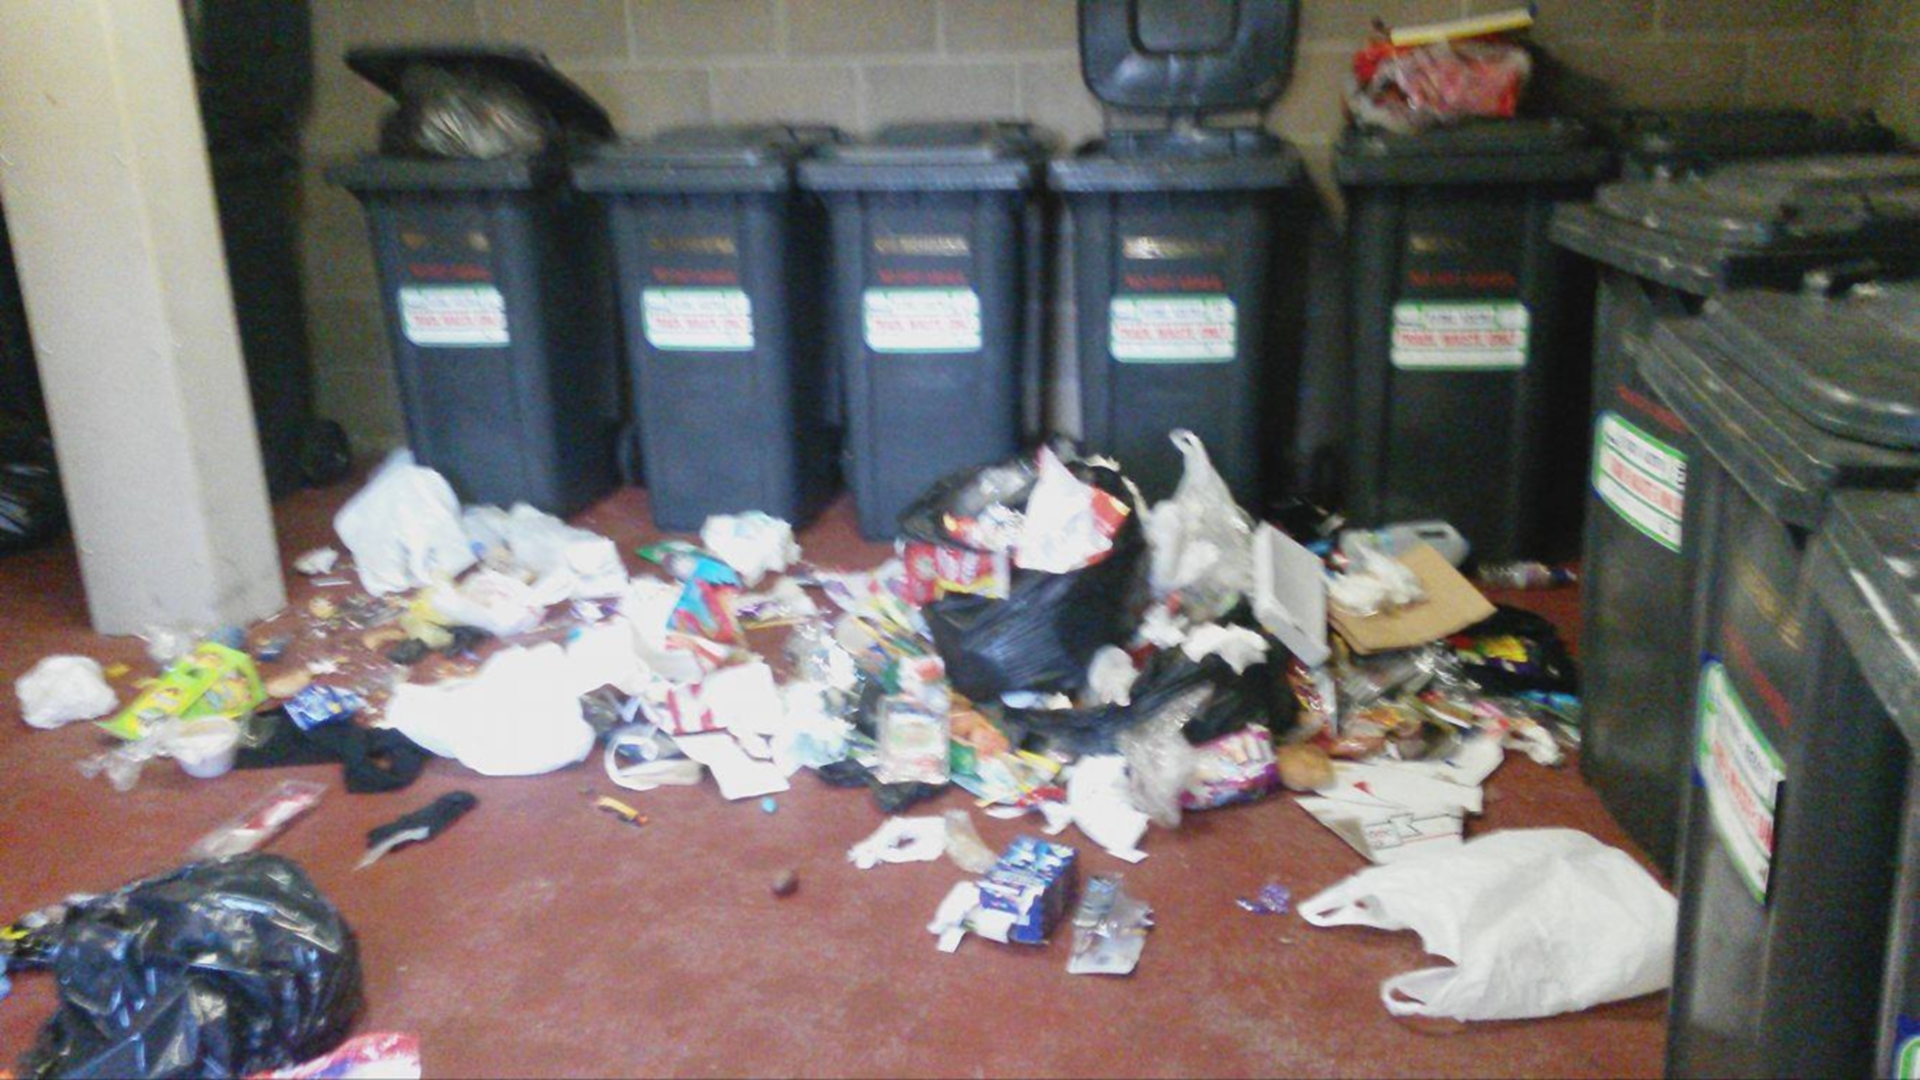 Some of the rubbish that was dumped on the floor at the Ann Street flats.